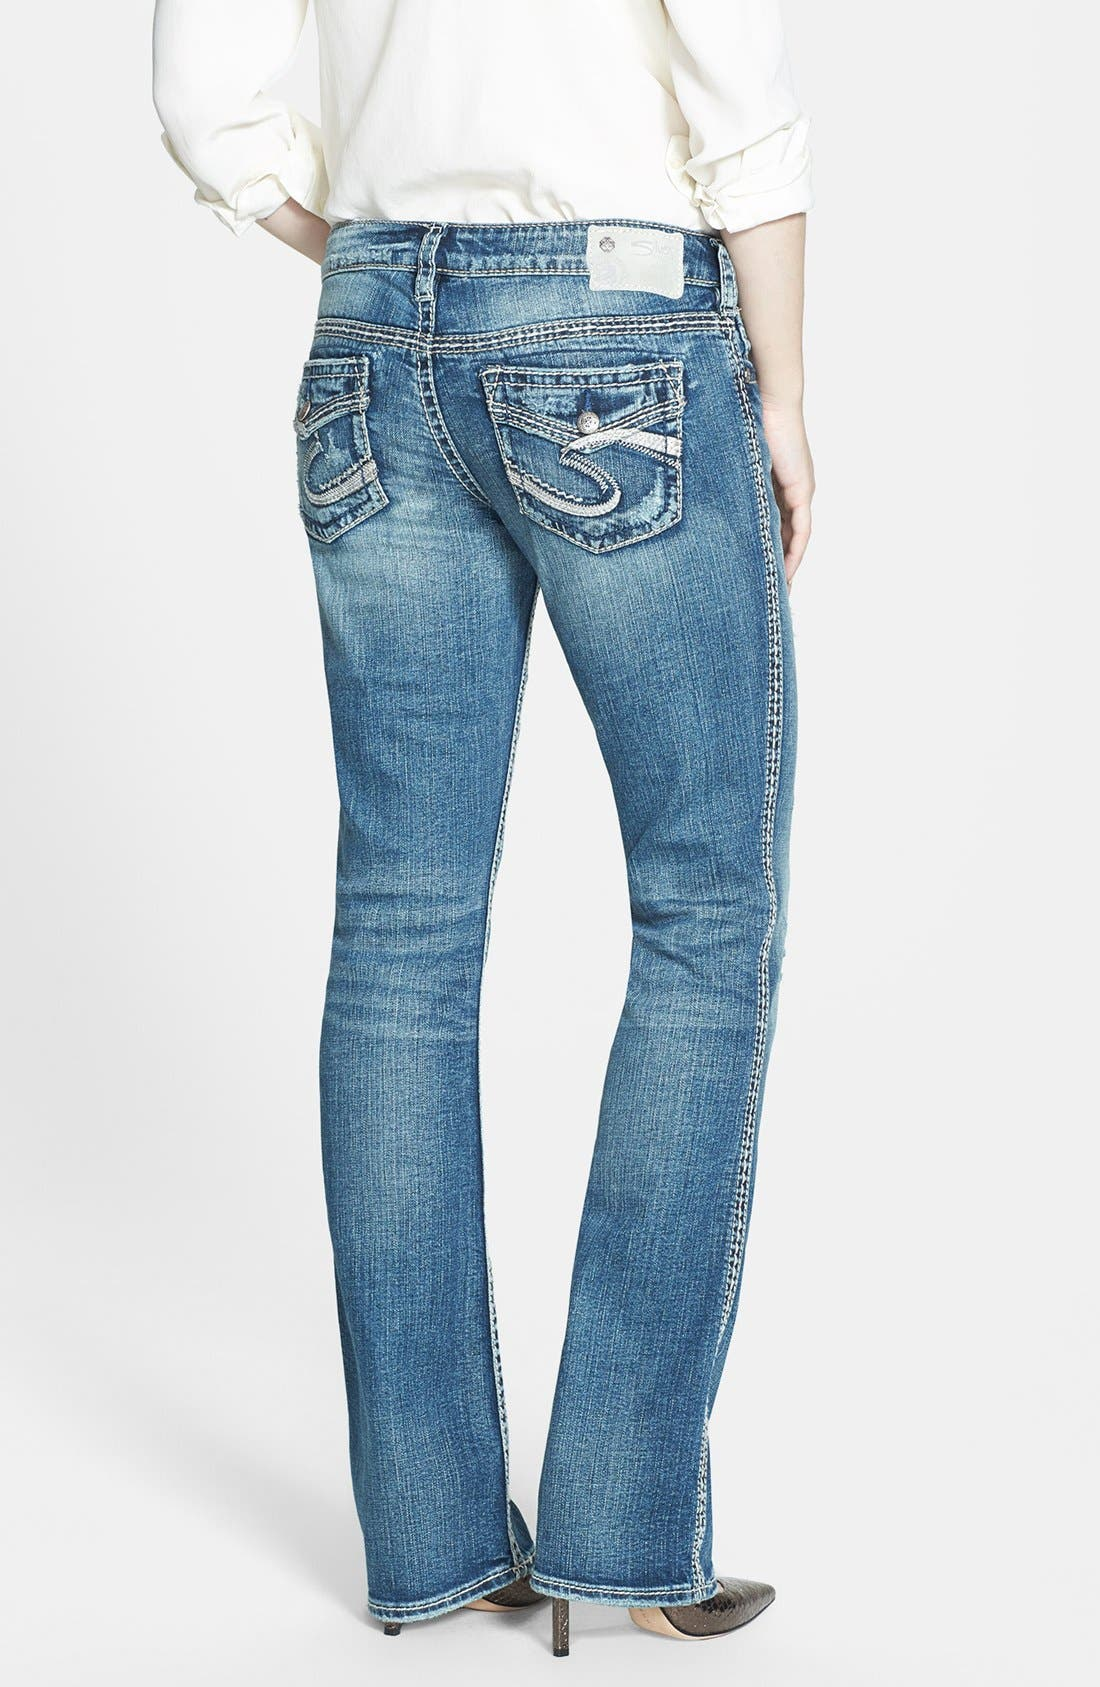 Alternate Image 2  - Silver Jeans Co. 'Aiko' Faux Flap Pocket Distressed Bootcut Jeans (Indigo)